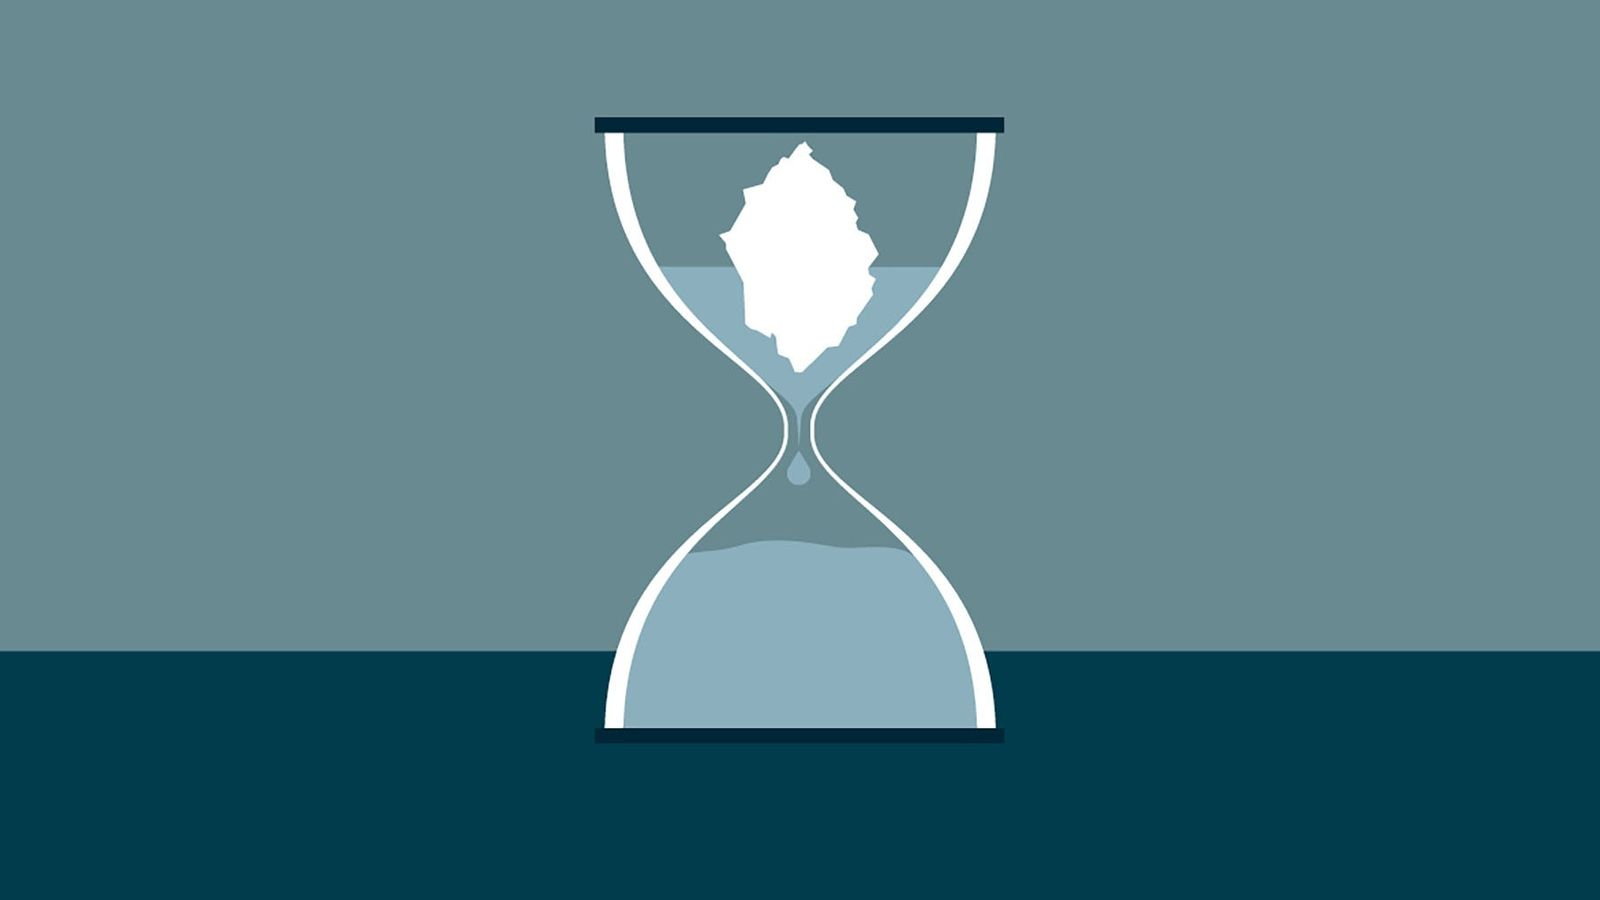 When it comes to climate change, the clock's ticking...